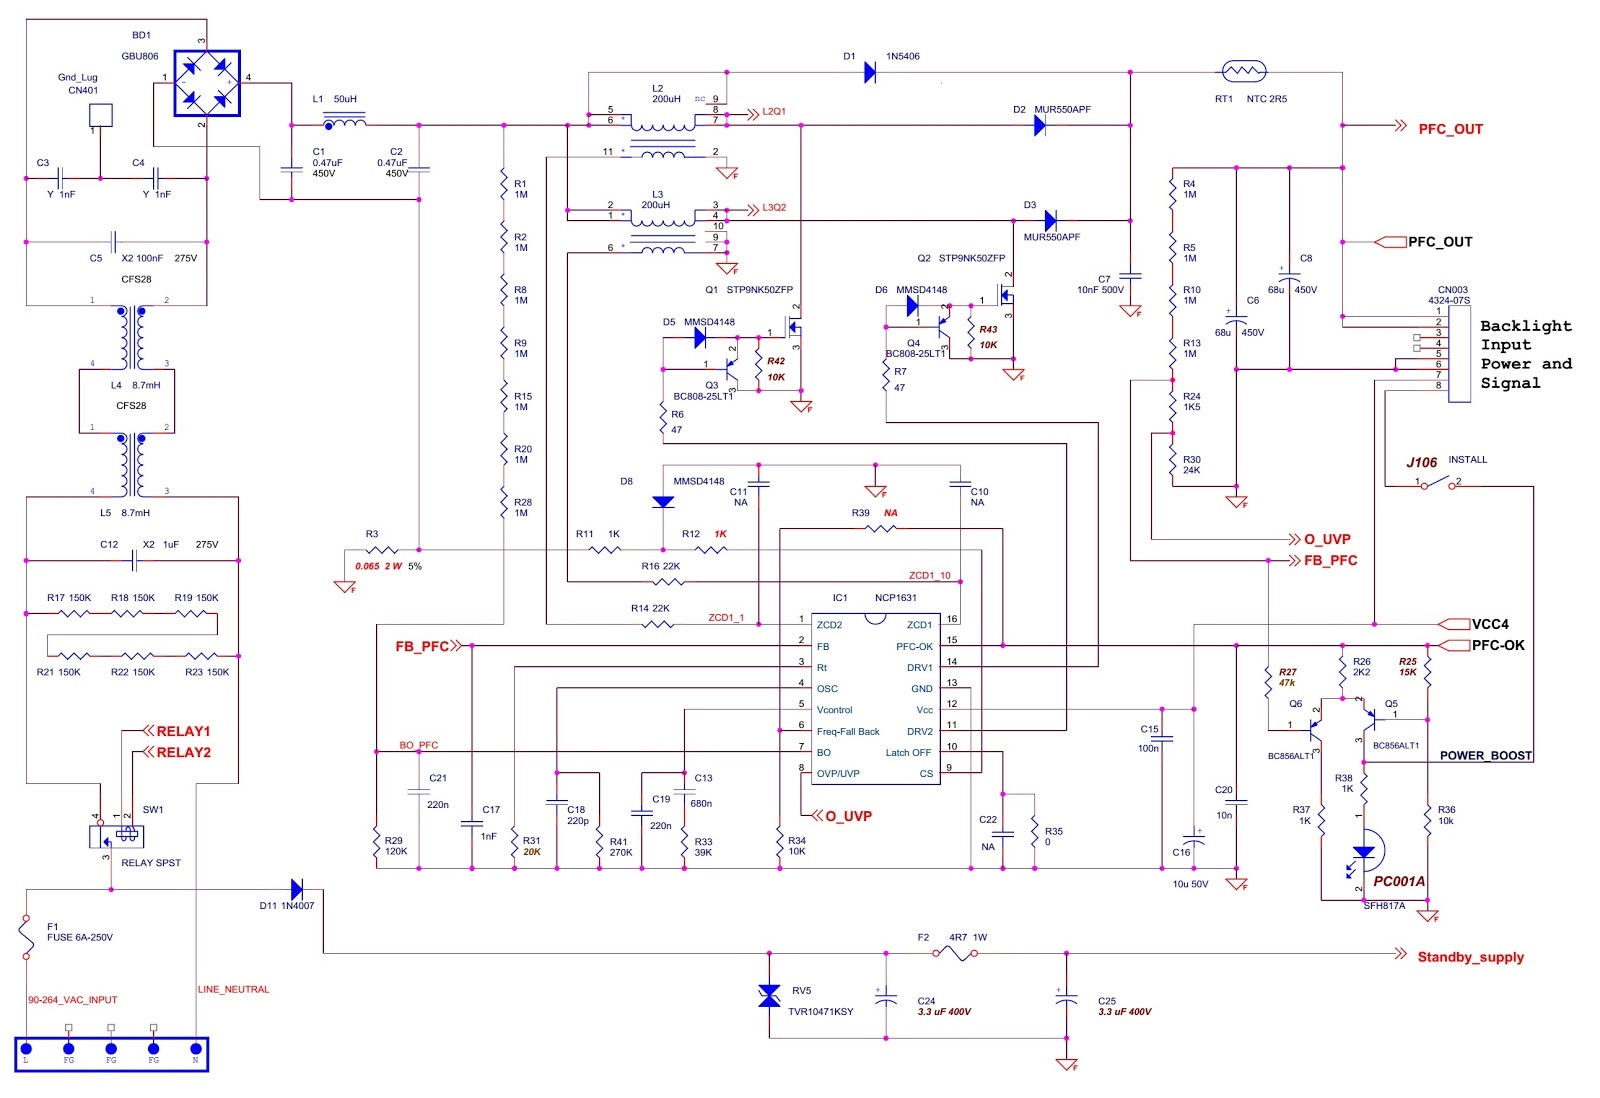 46 INCH LCD TV SMPS SCHEMATIC - Tips And Trick Electronic